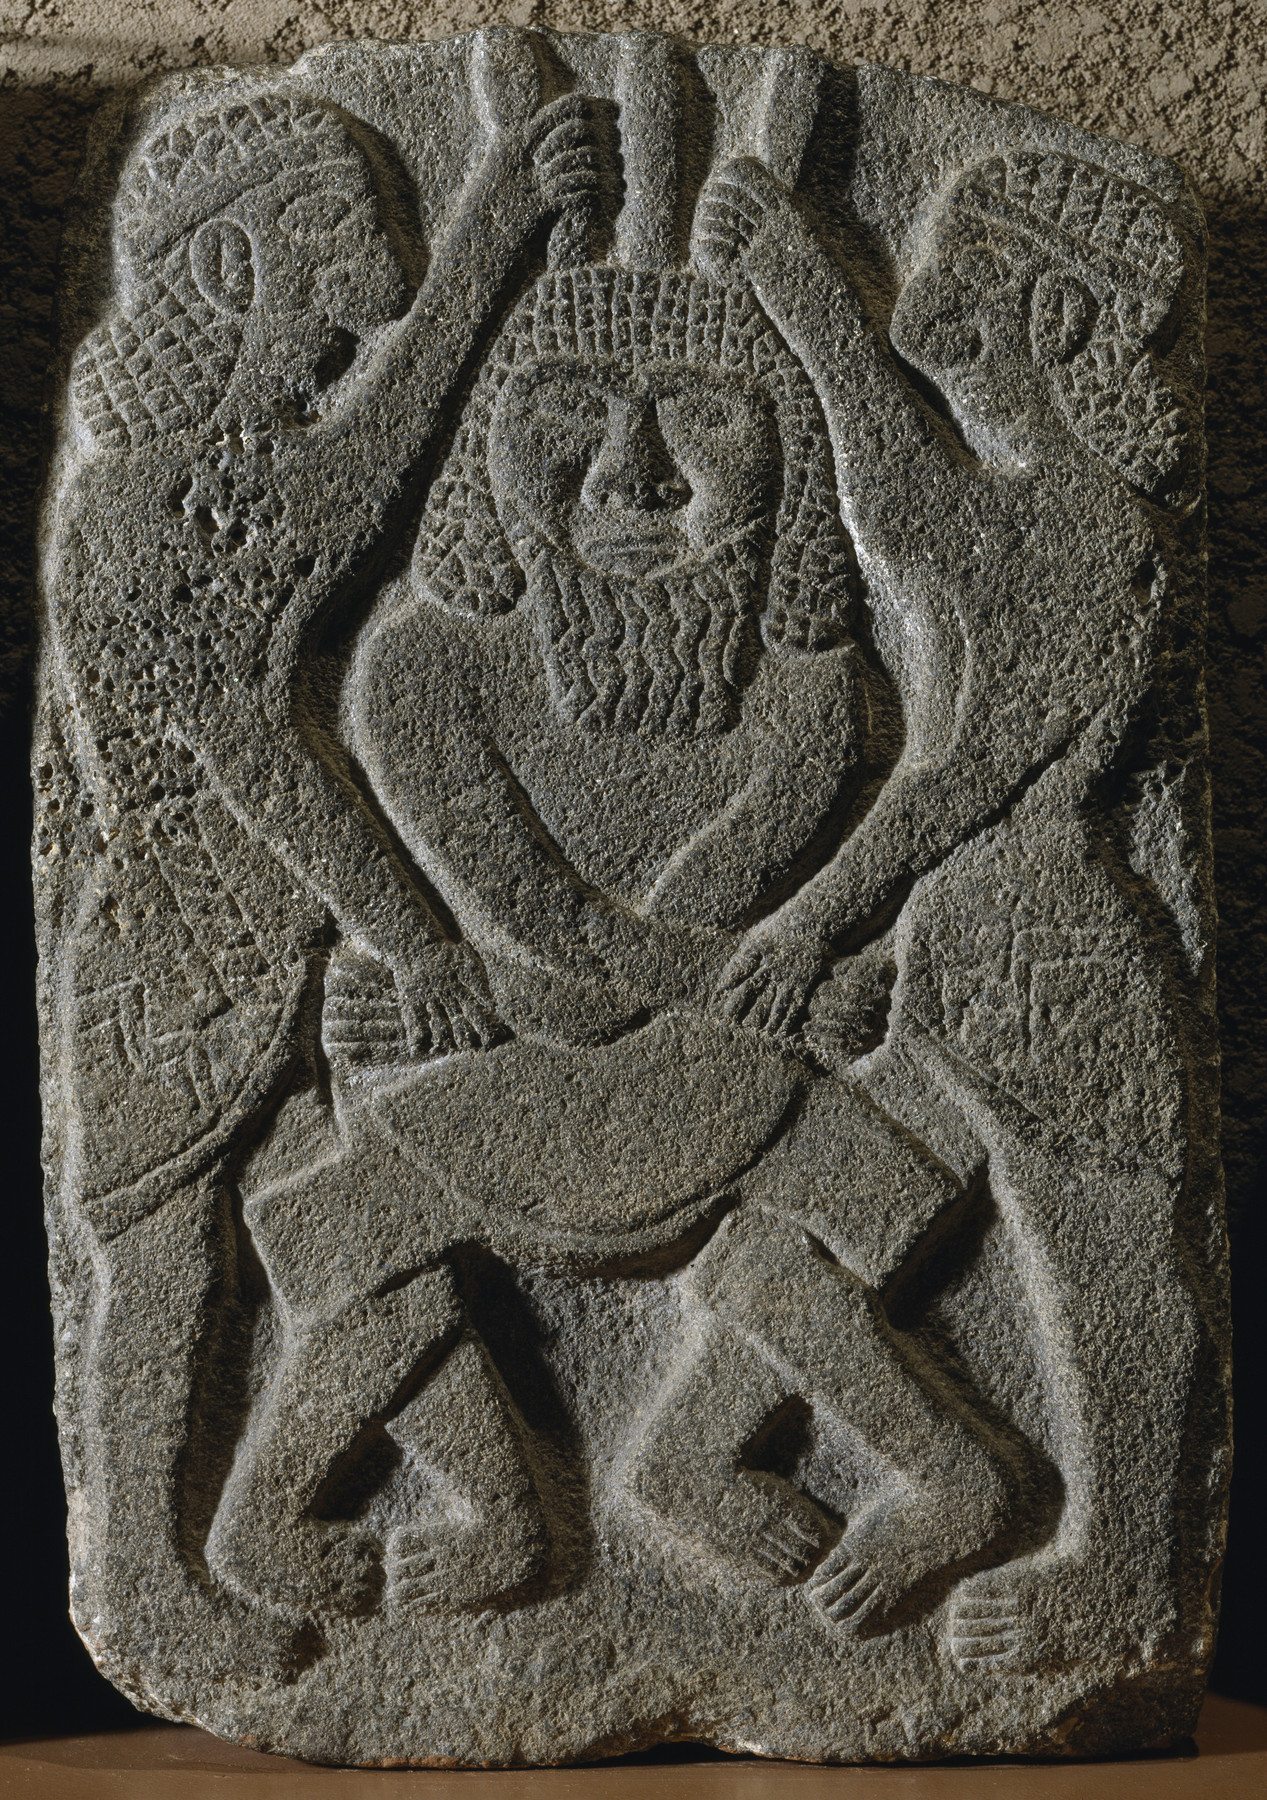 Steinrelief aus Syrien, 10. Jahrhundert v. Chr., Basalt, Höhe 63 cm, Baltimore, The Walters Art Museum, Inv.-Nr. 21.18.<br>